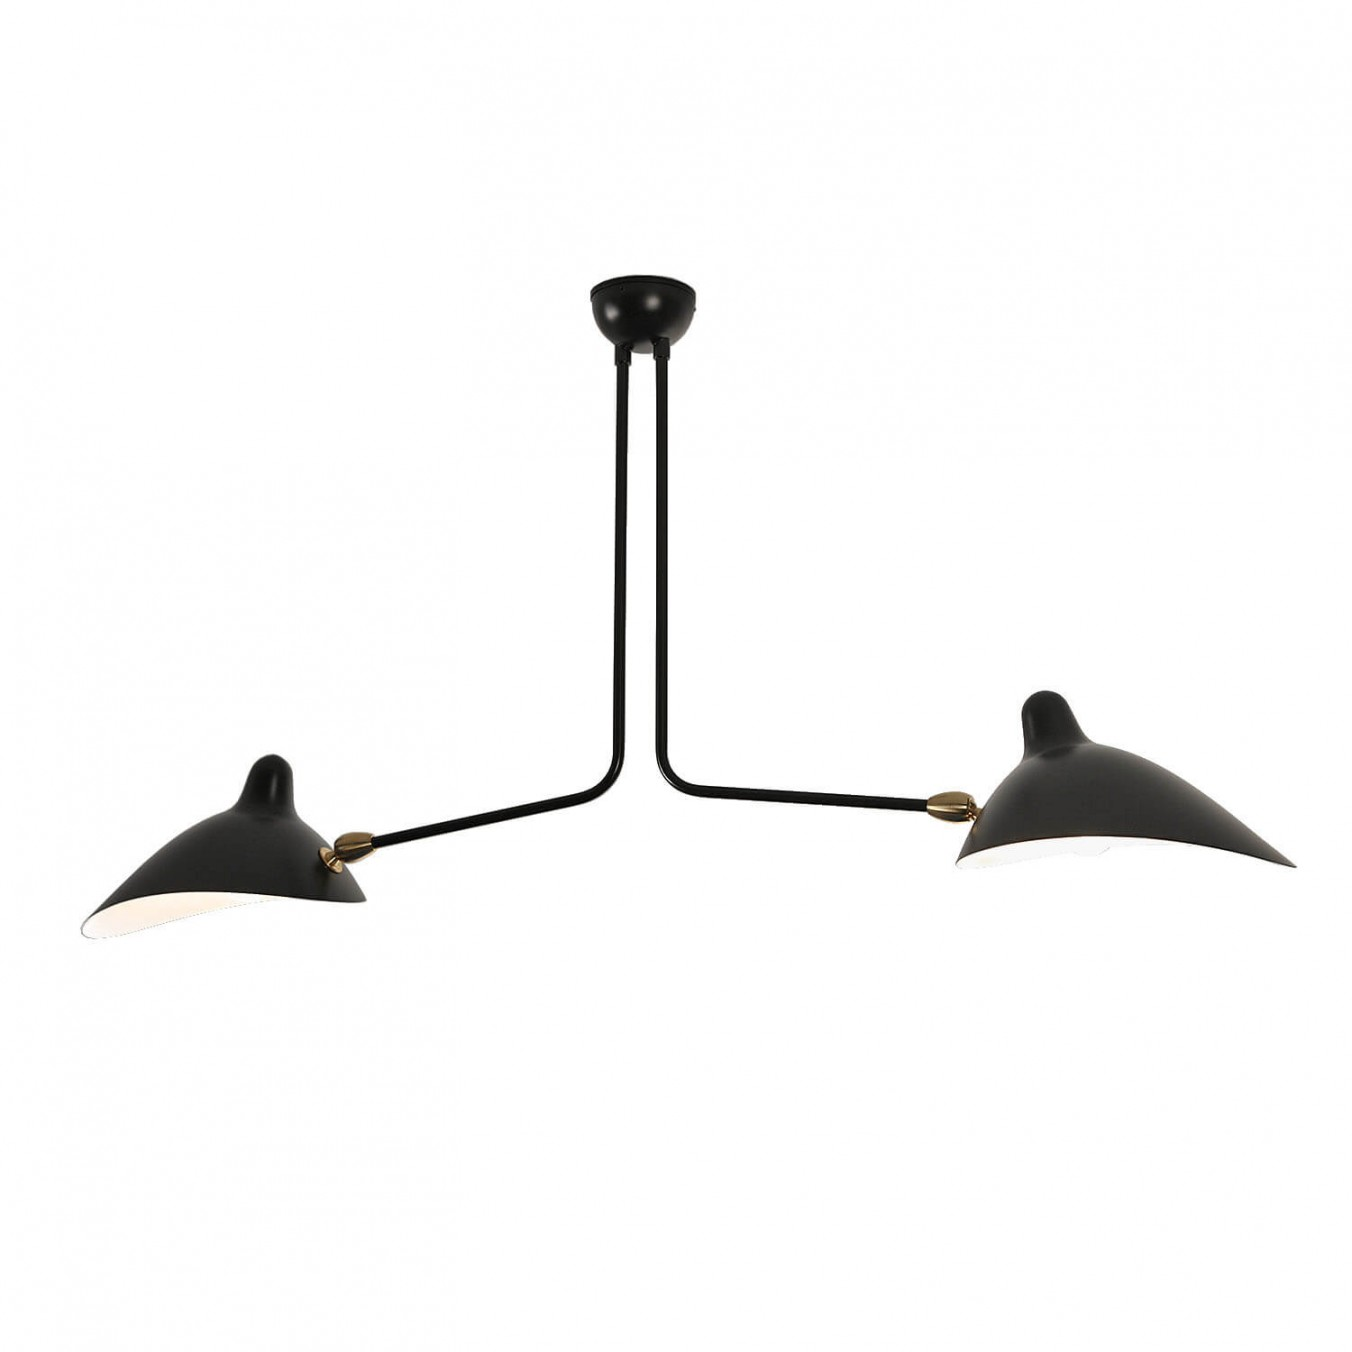 Ceiling Light with 2 fixed arms